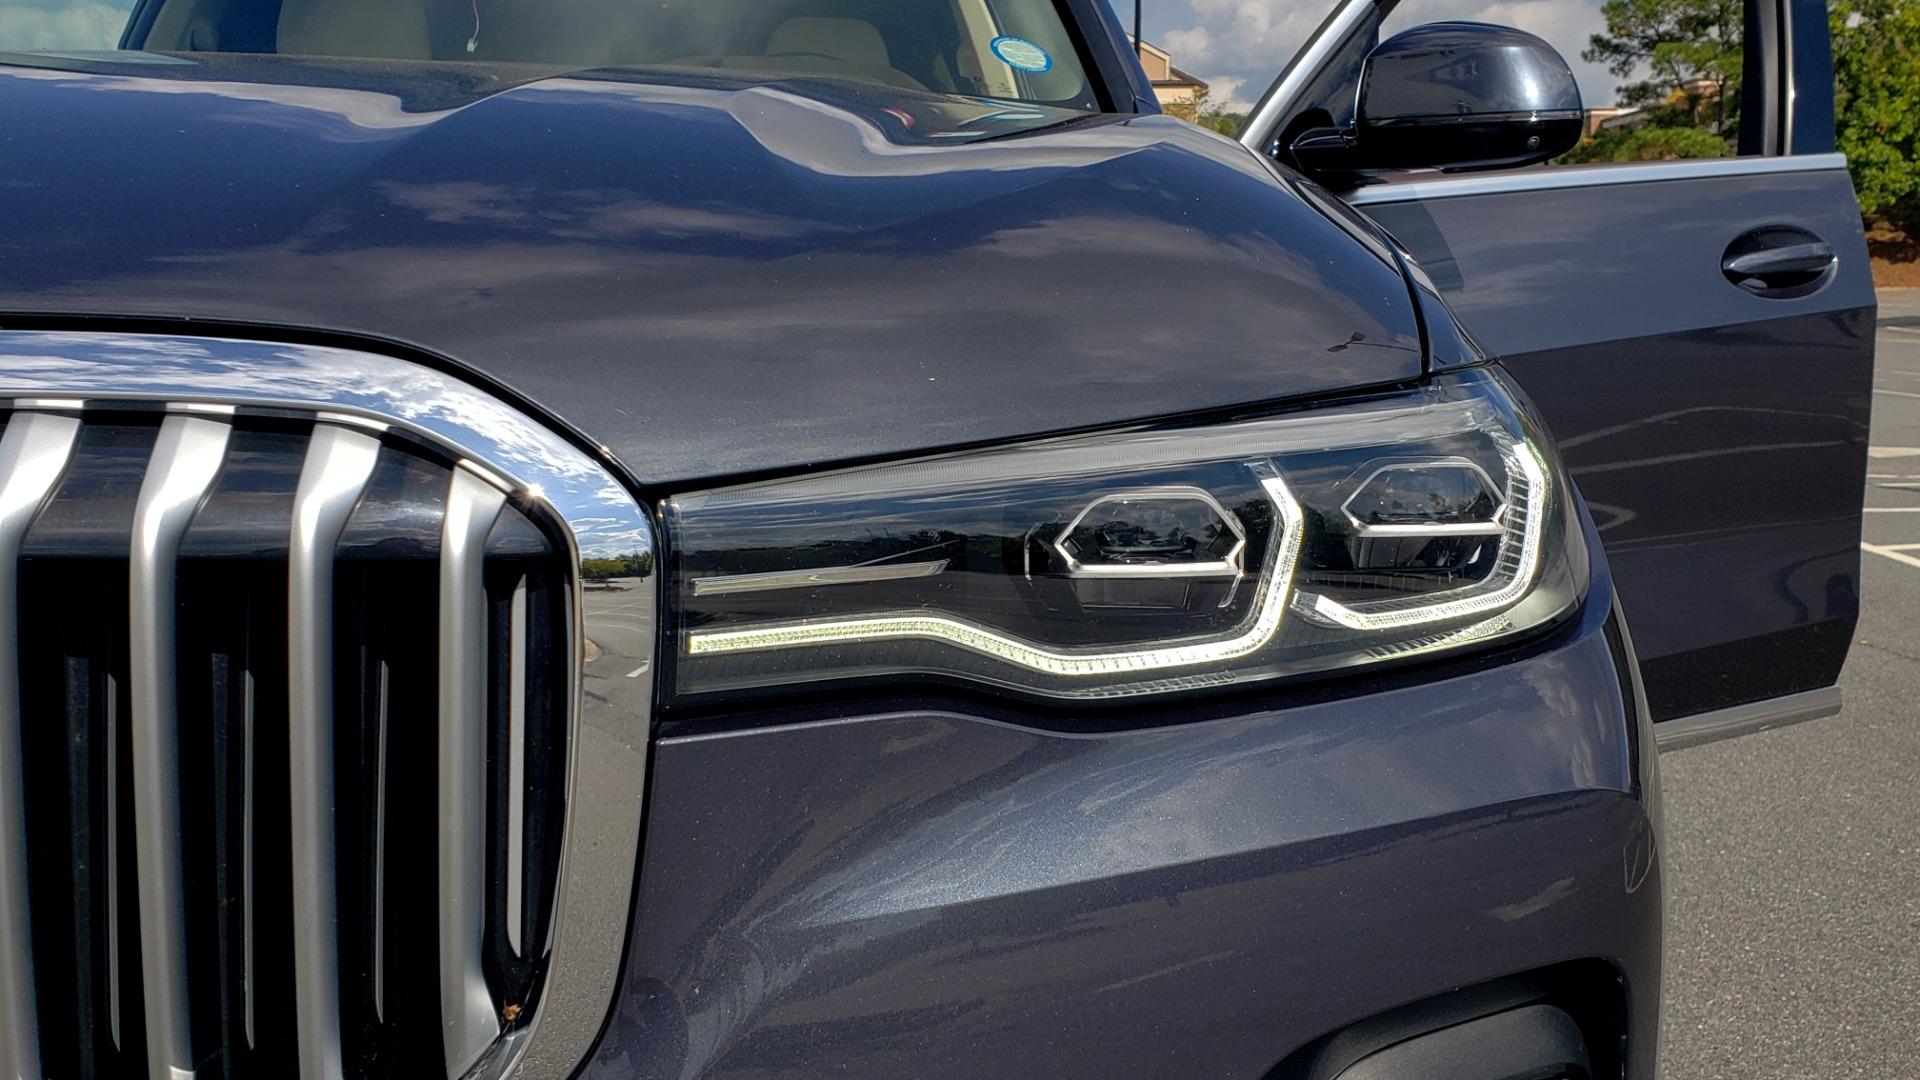 Used 2019 BMW X7 XDRIVE40I PREMIUM / LUXURY / COLD WEATHER / PARK ASST / PANORAMIC SKY / TOW for sale $75,999 at Formula Imports in Charlotte NC 28227 29